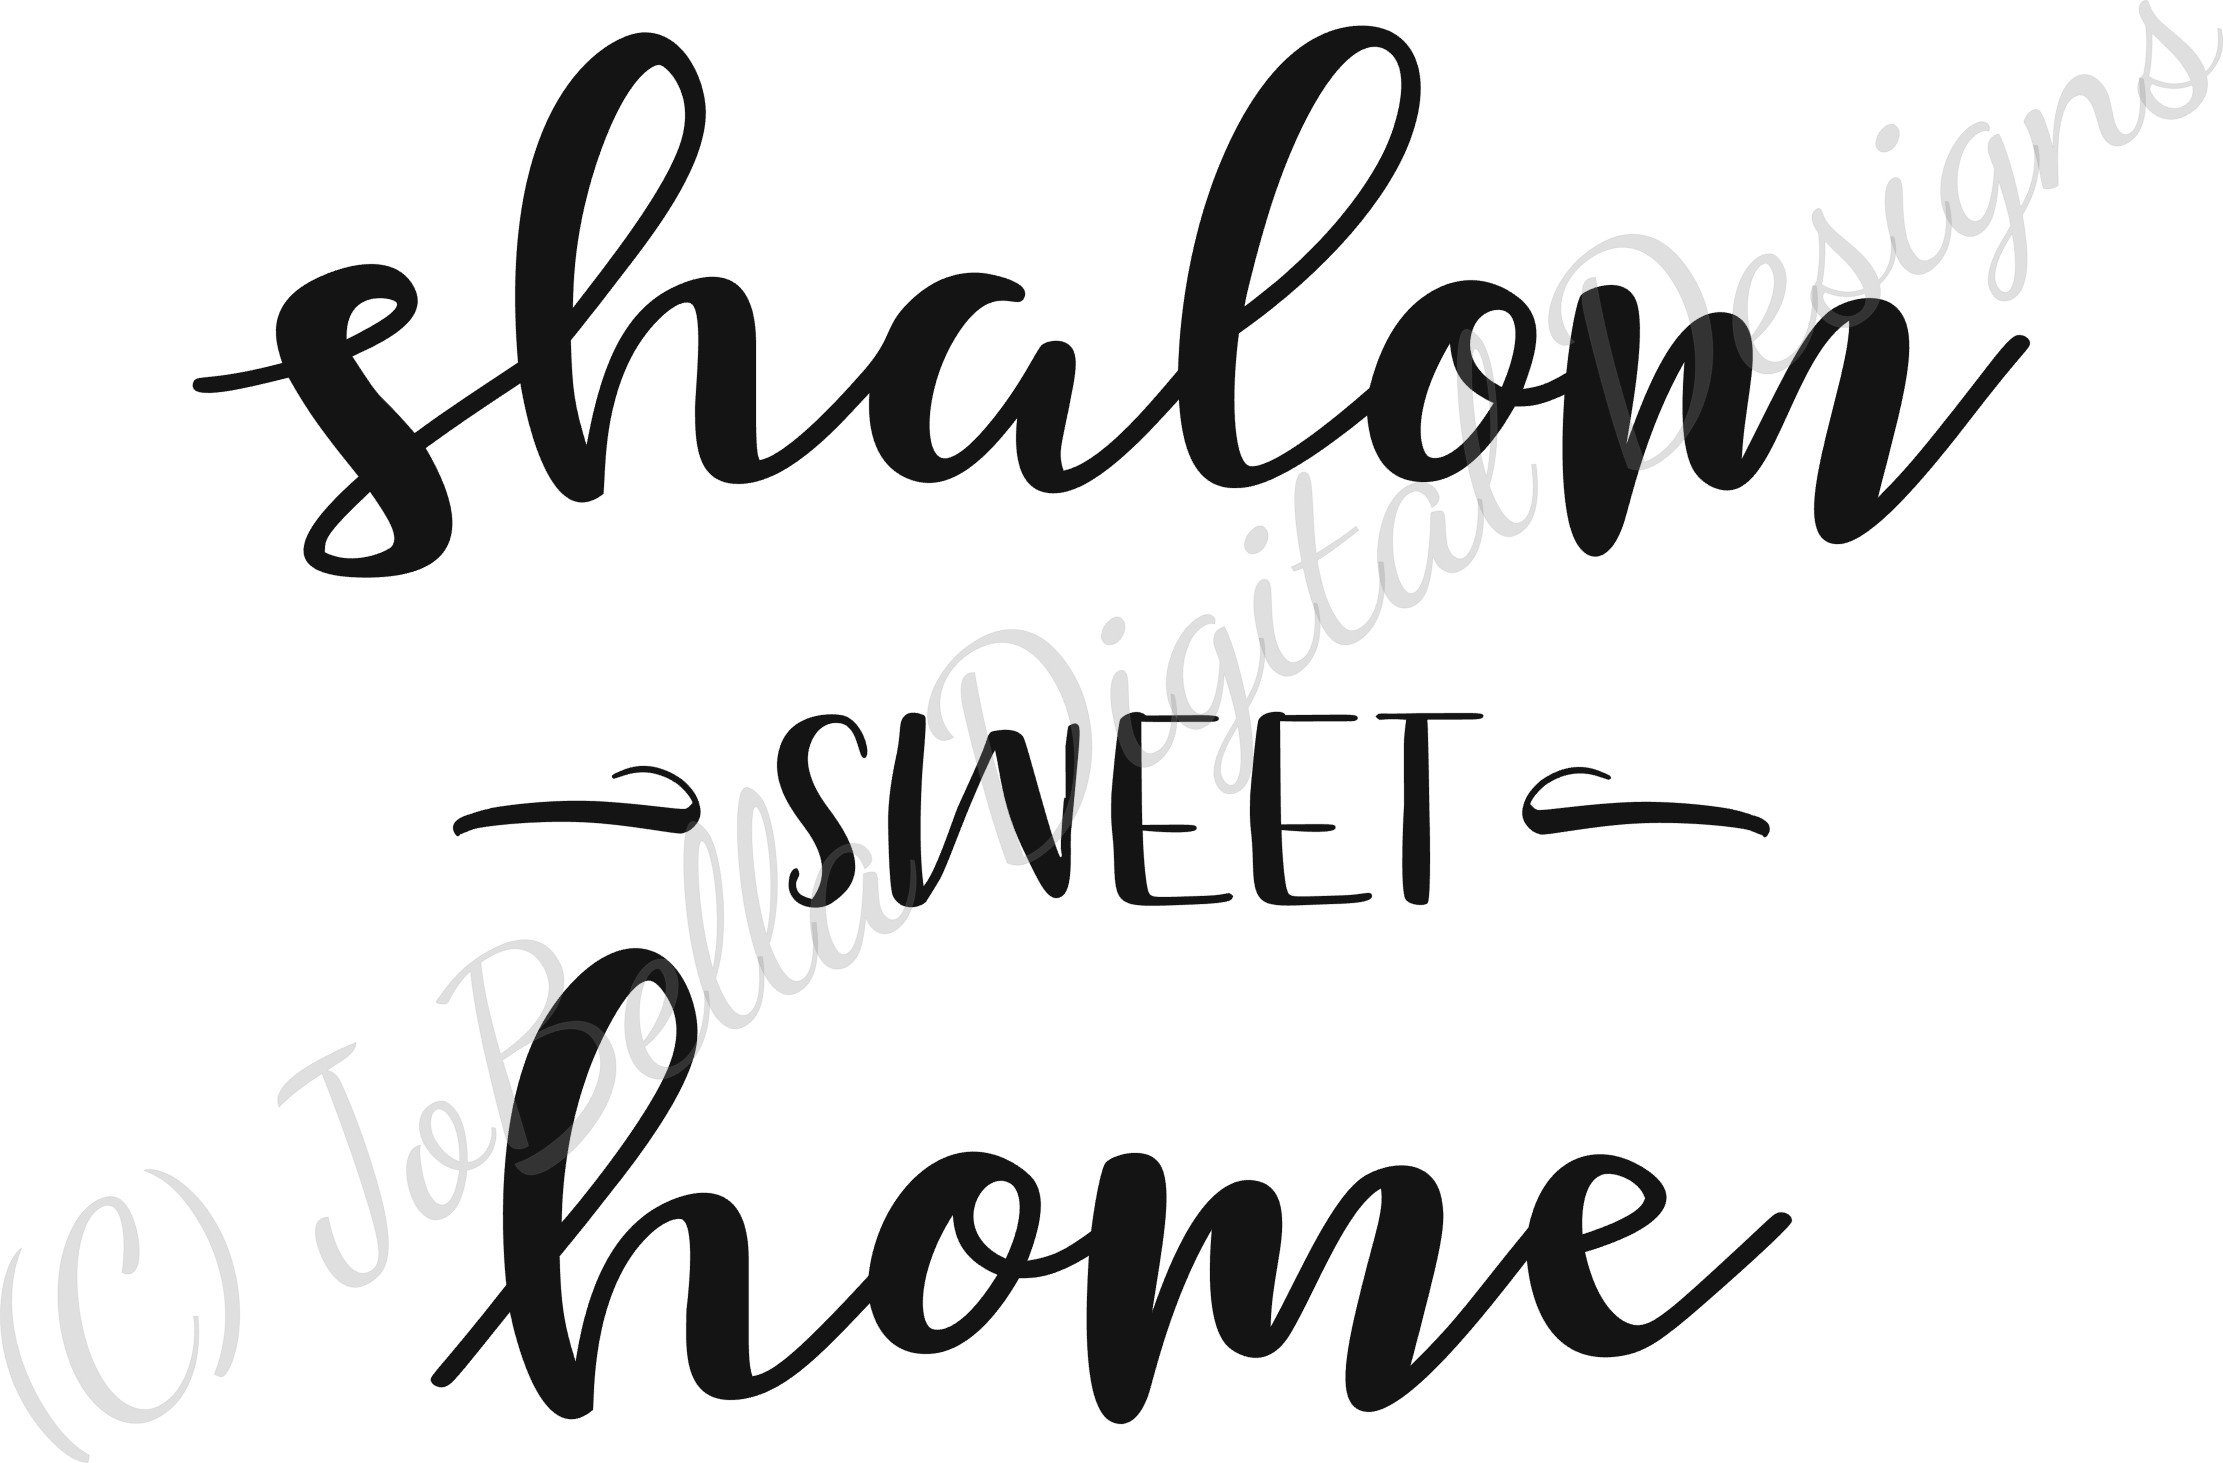 Shalom Sweet Home SVG, Printable and Sublimation PNG example image 3